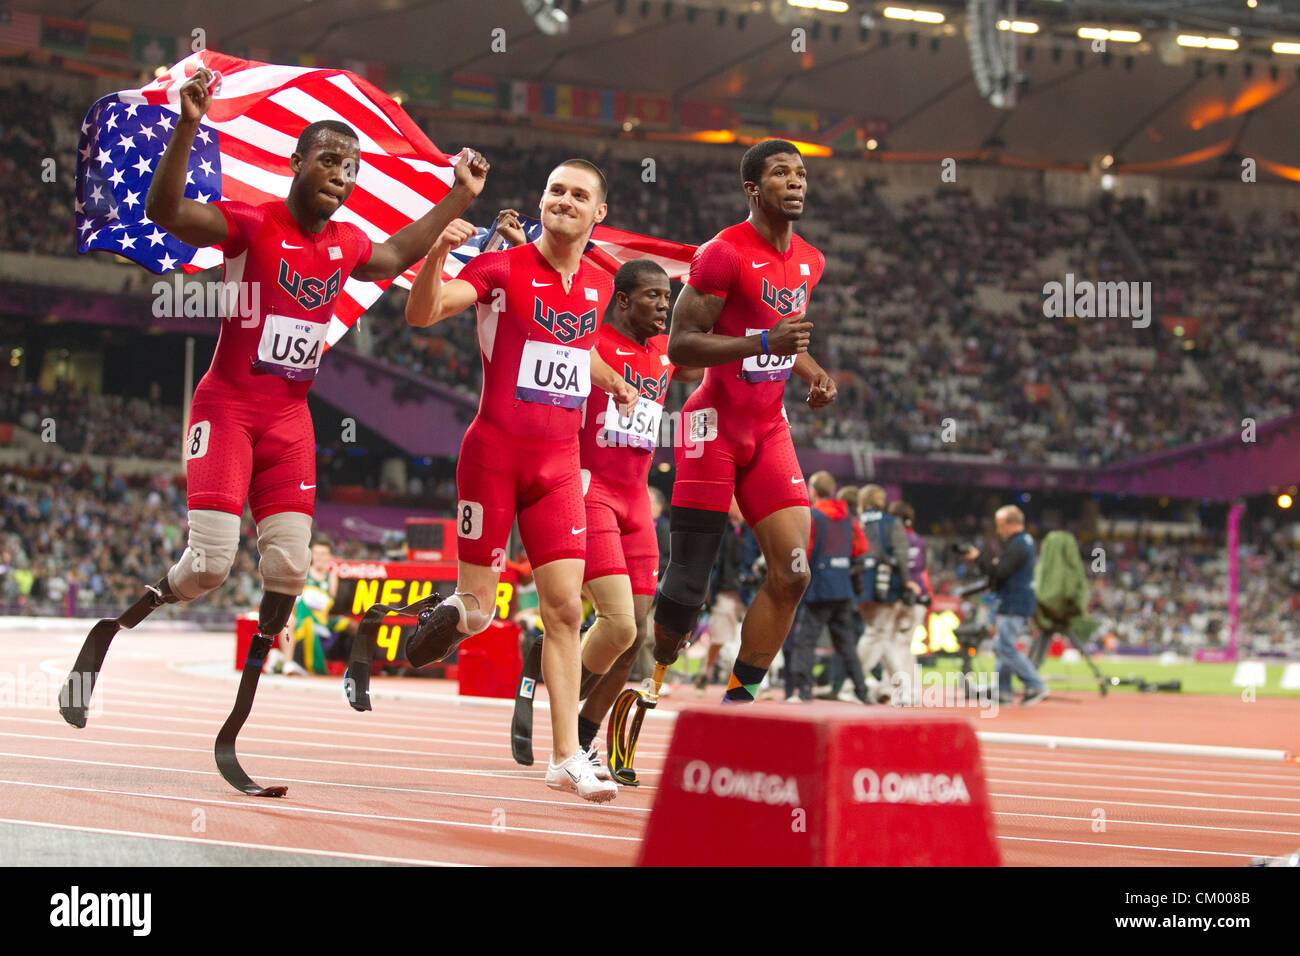 USA men's 4X100 meter T42-44  class relay team celebrates what the team thought was a medal finish at the Paralympics. - Stock Image